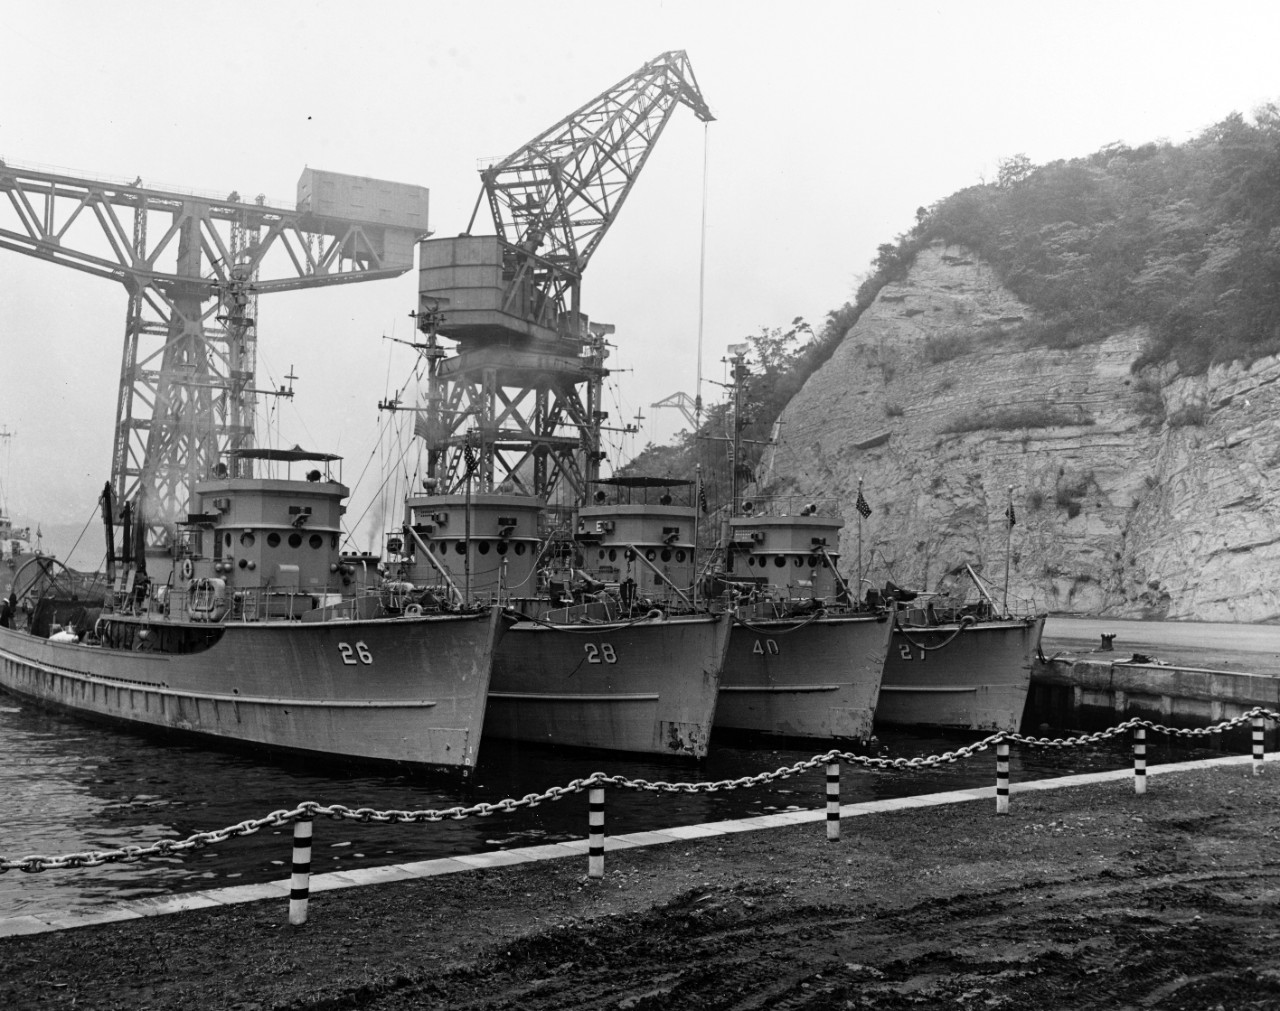 Four U.S. Navy minesweepers (AMS) tied up at Yokosuka, Japan